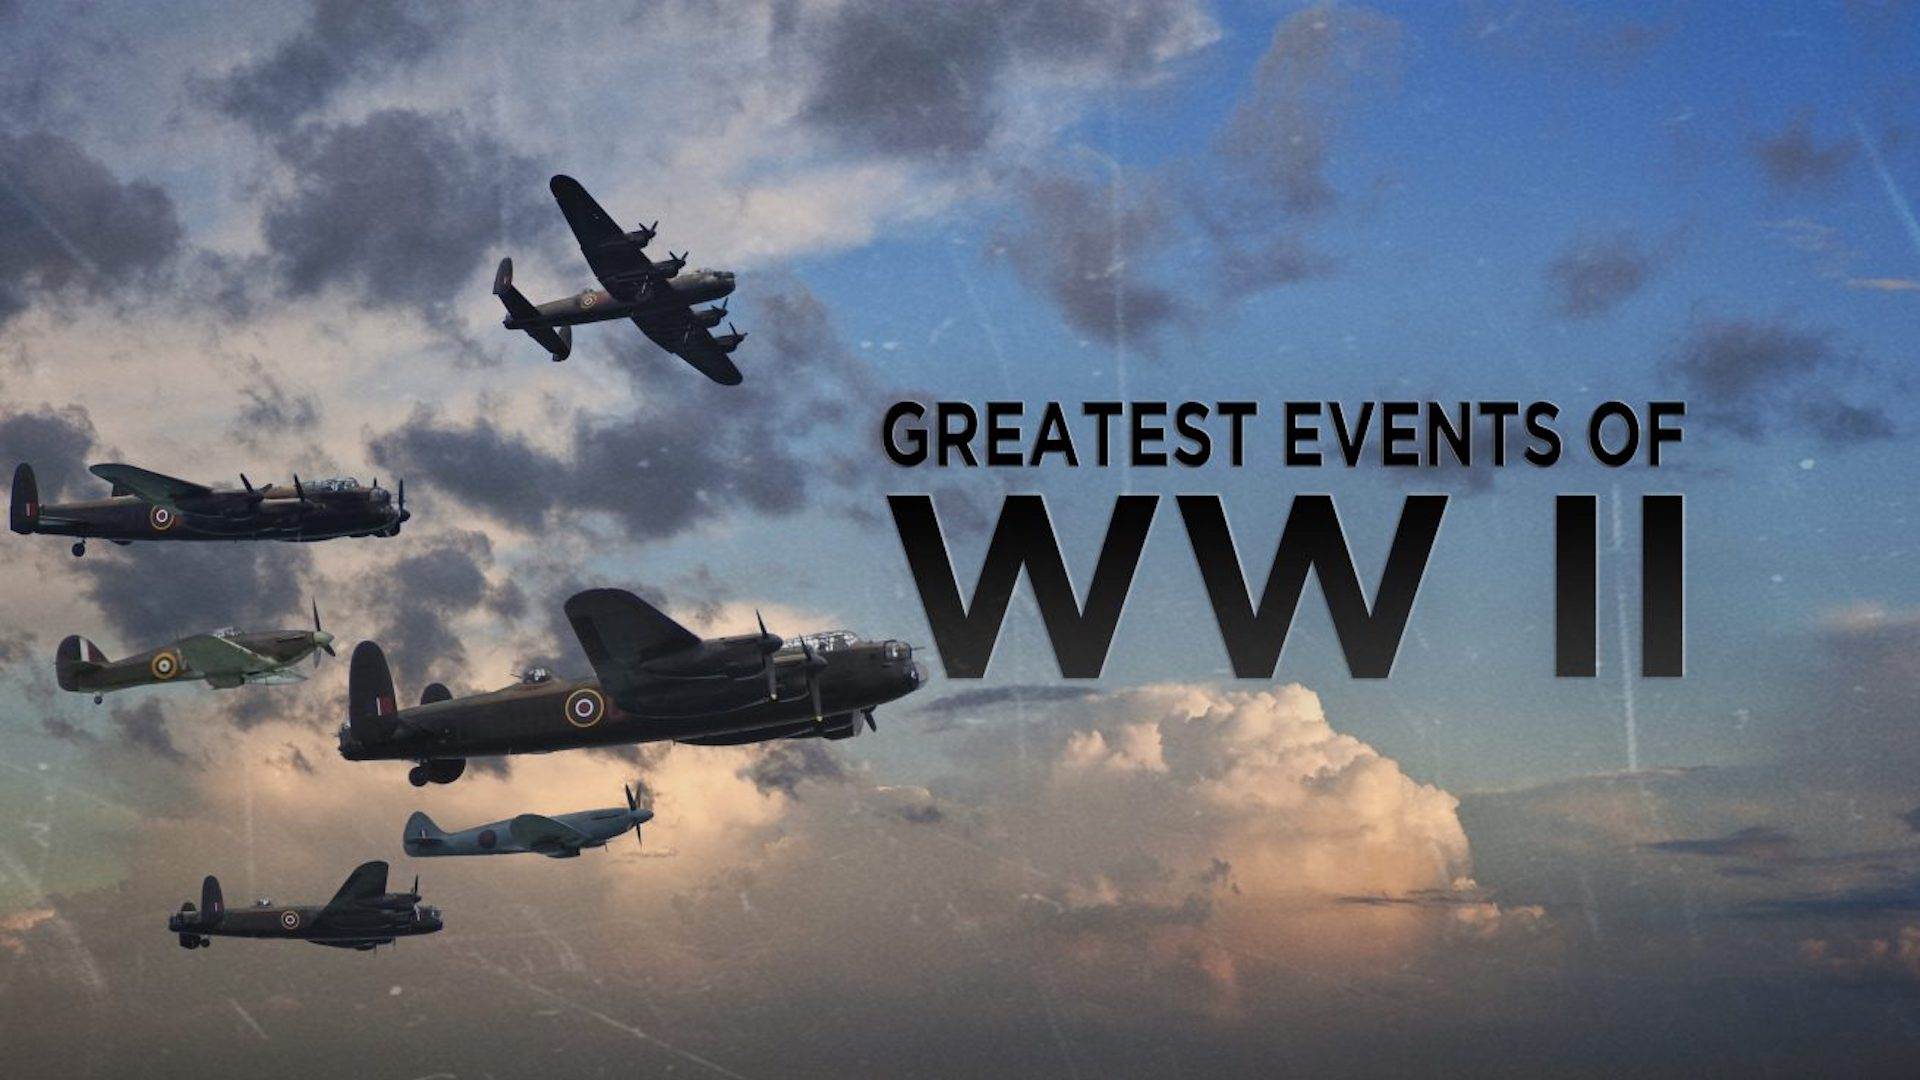 greatest events of world war ii in hd colour s01e07 720p web x264-stout